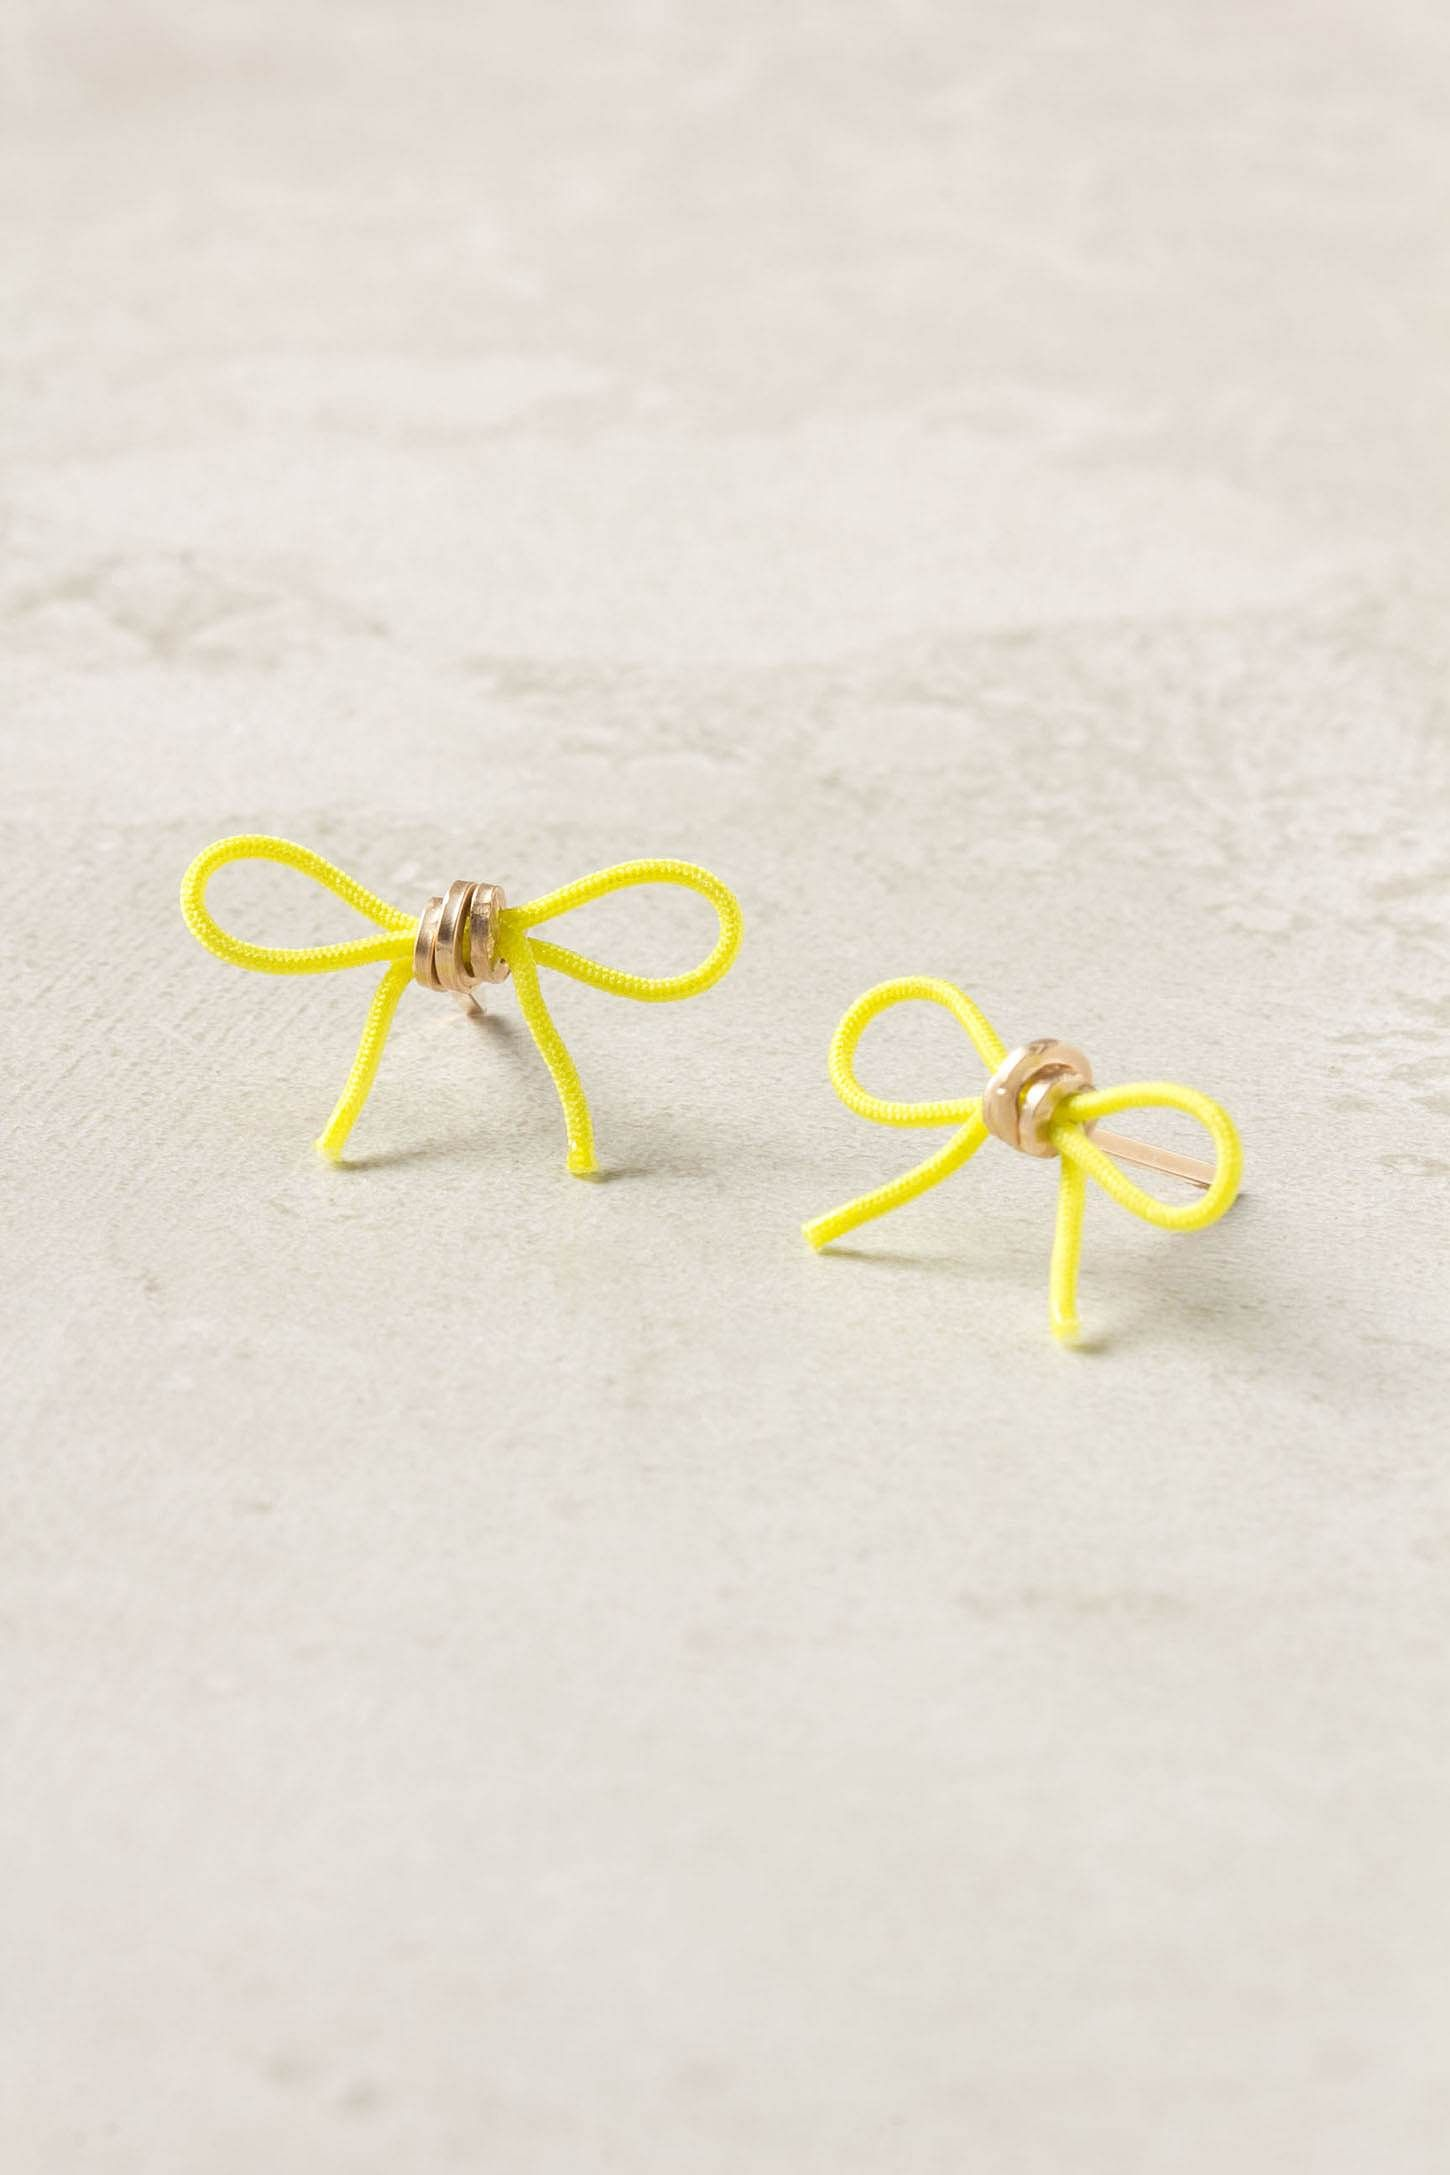 Bunny Ears Posts $28. Are these super cute or way too twee?